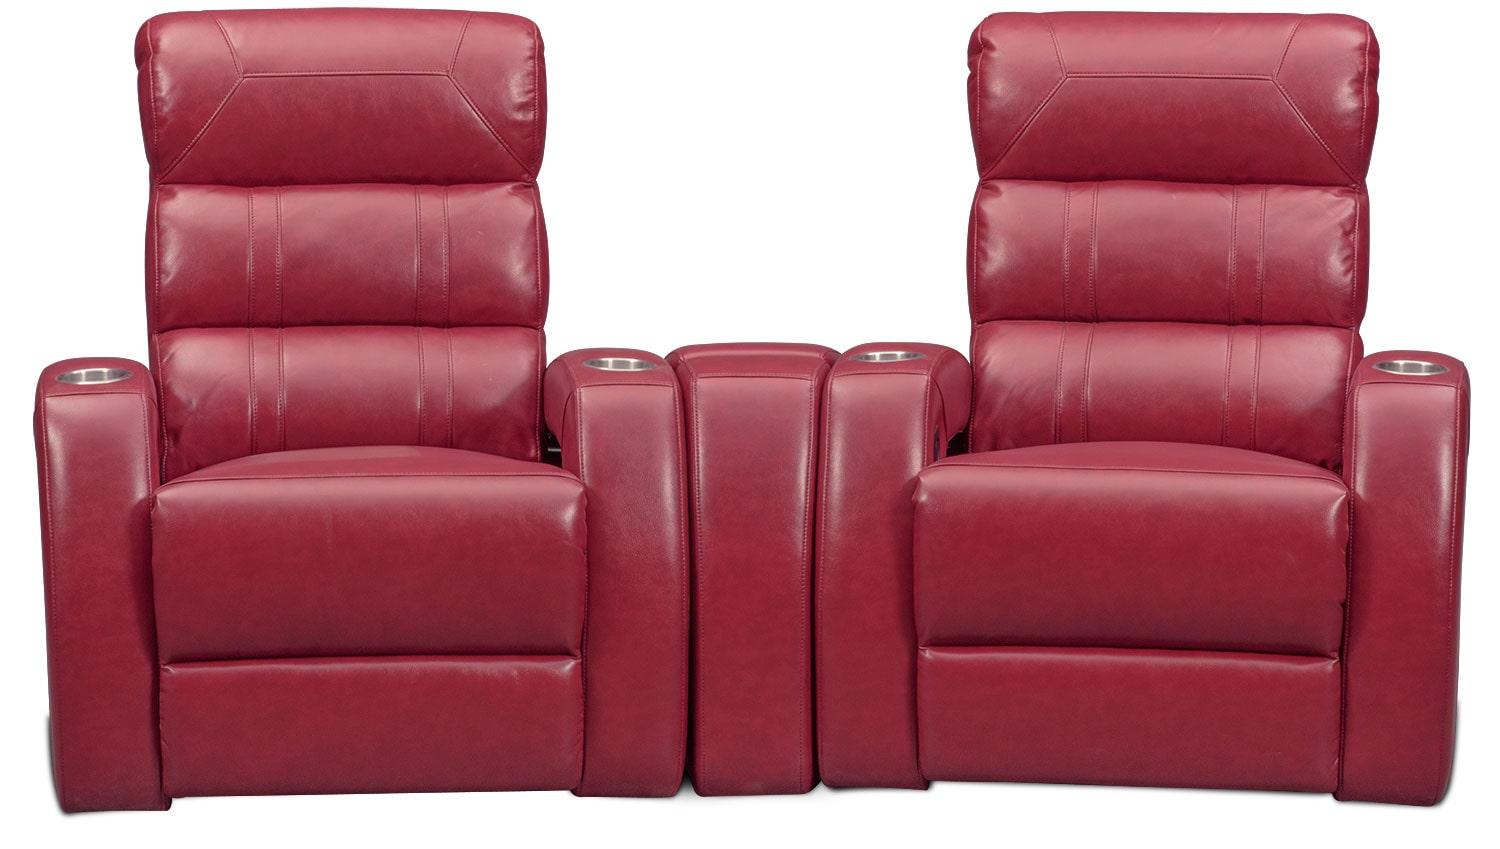 Bravo 3 piece power reclining home theater sectional red for Red sectional sofa value city